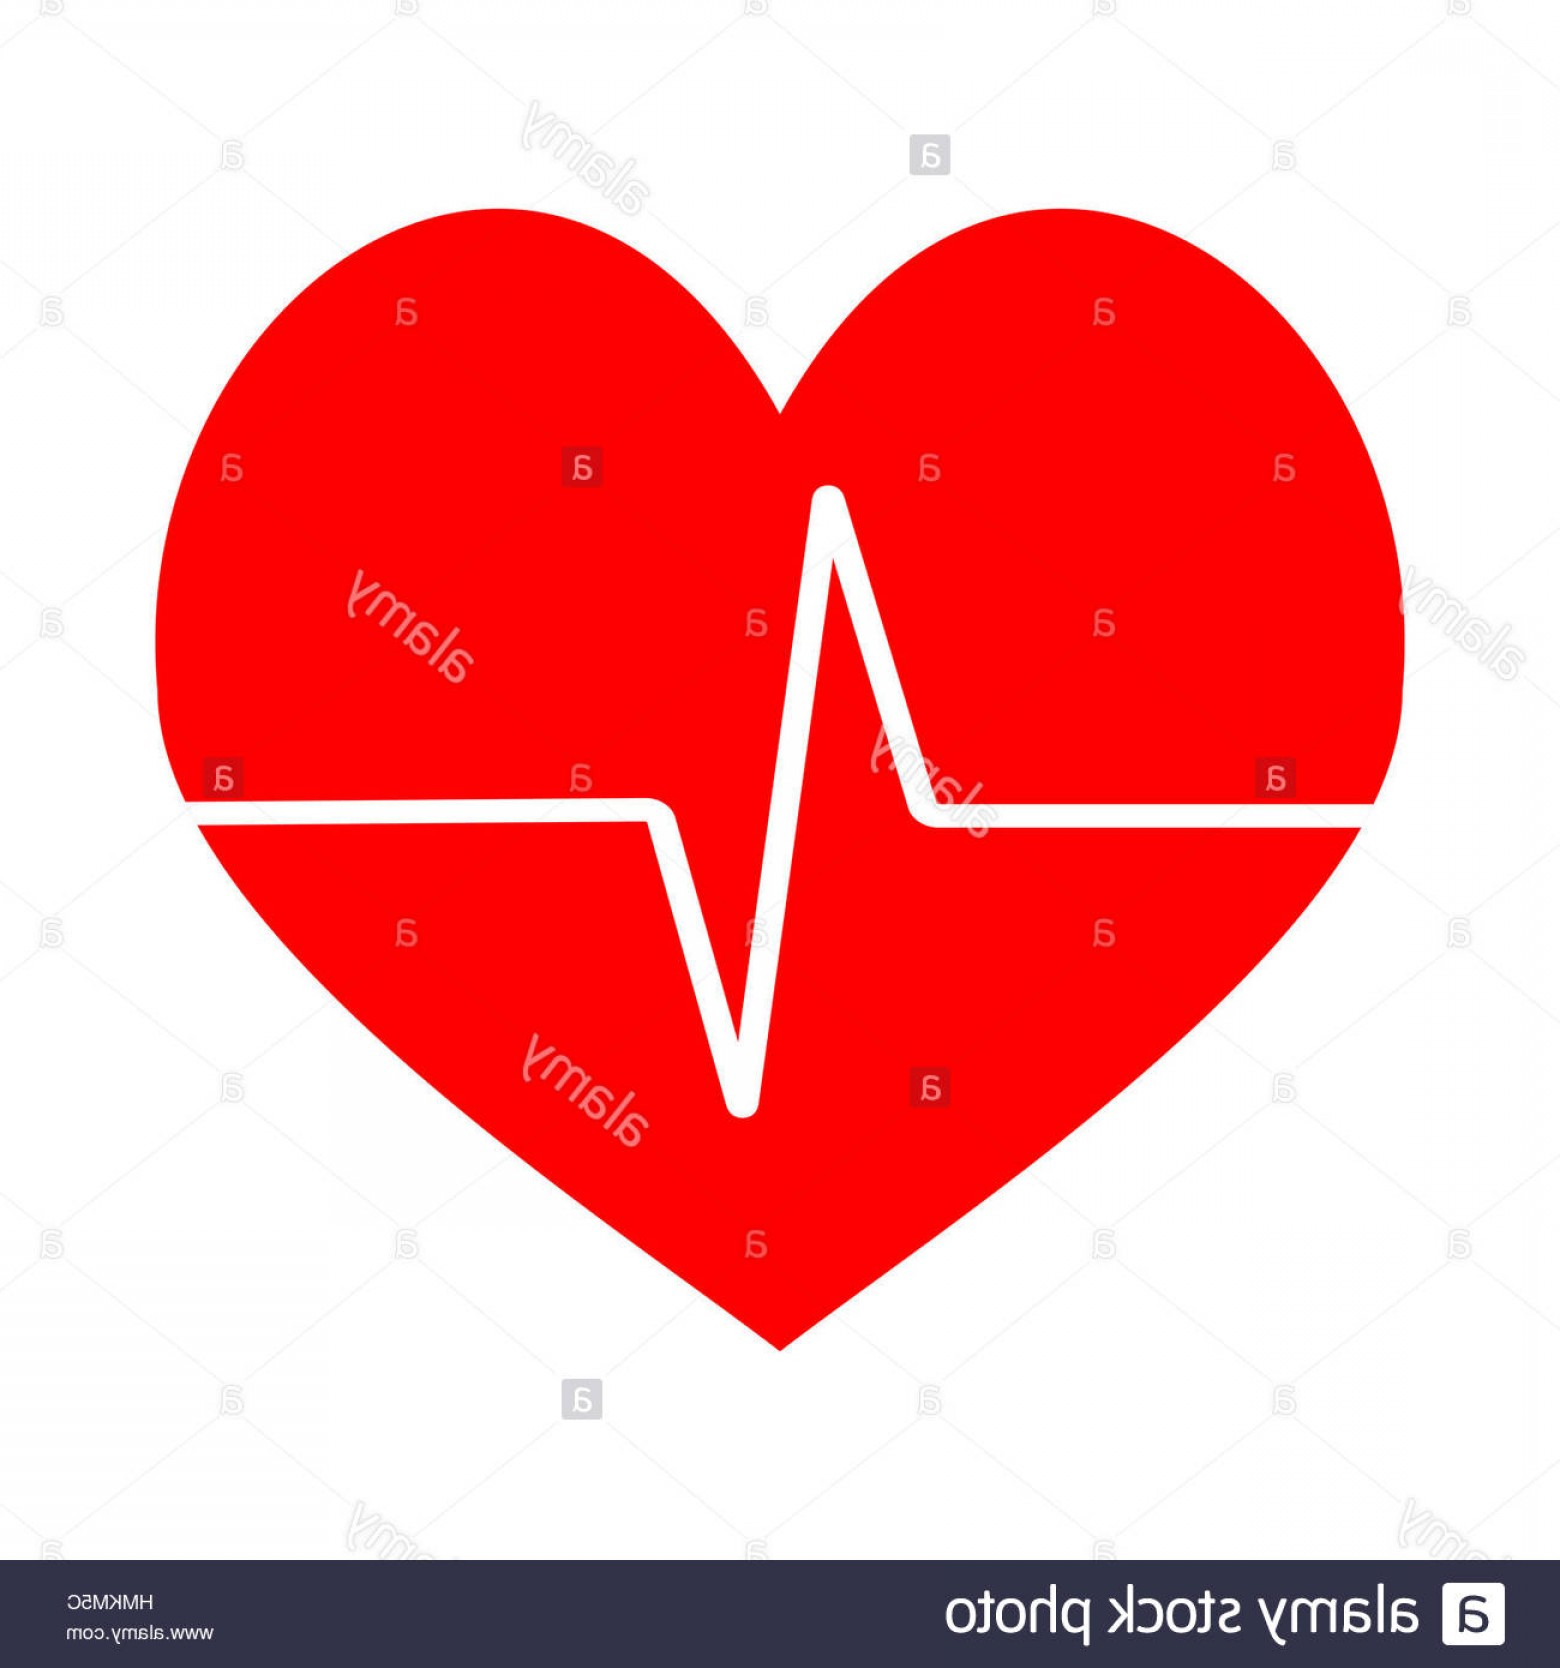 Heart Stethoscope With EKG Lines Vector: Stock Photo Heart Beat Icon Vector Pulse Ecg Cardiogram Red Heart Life Illustration